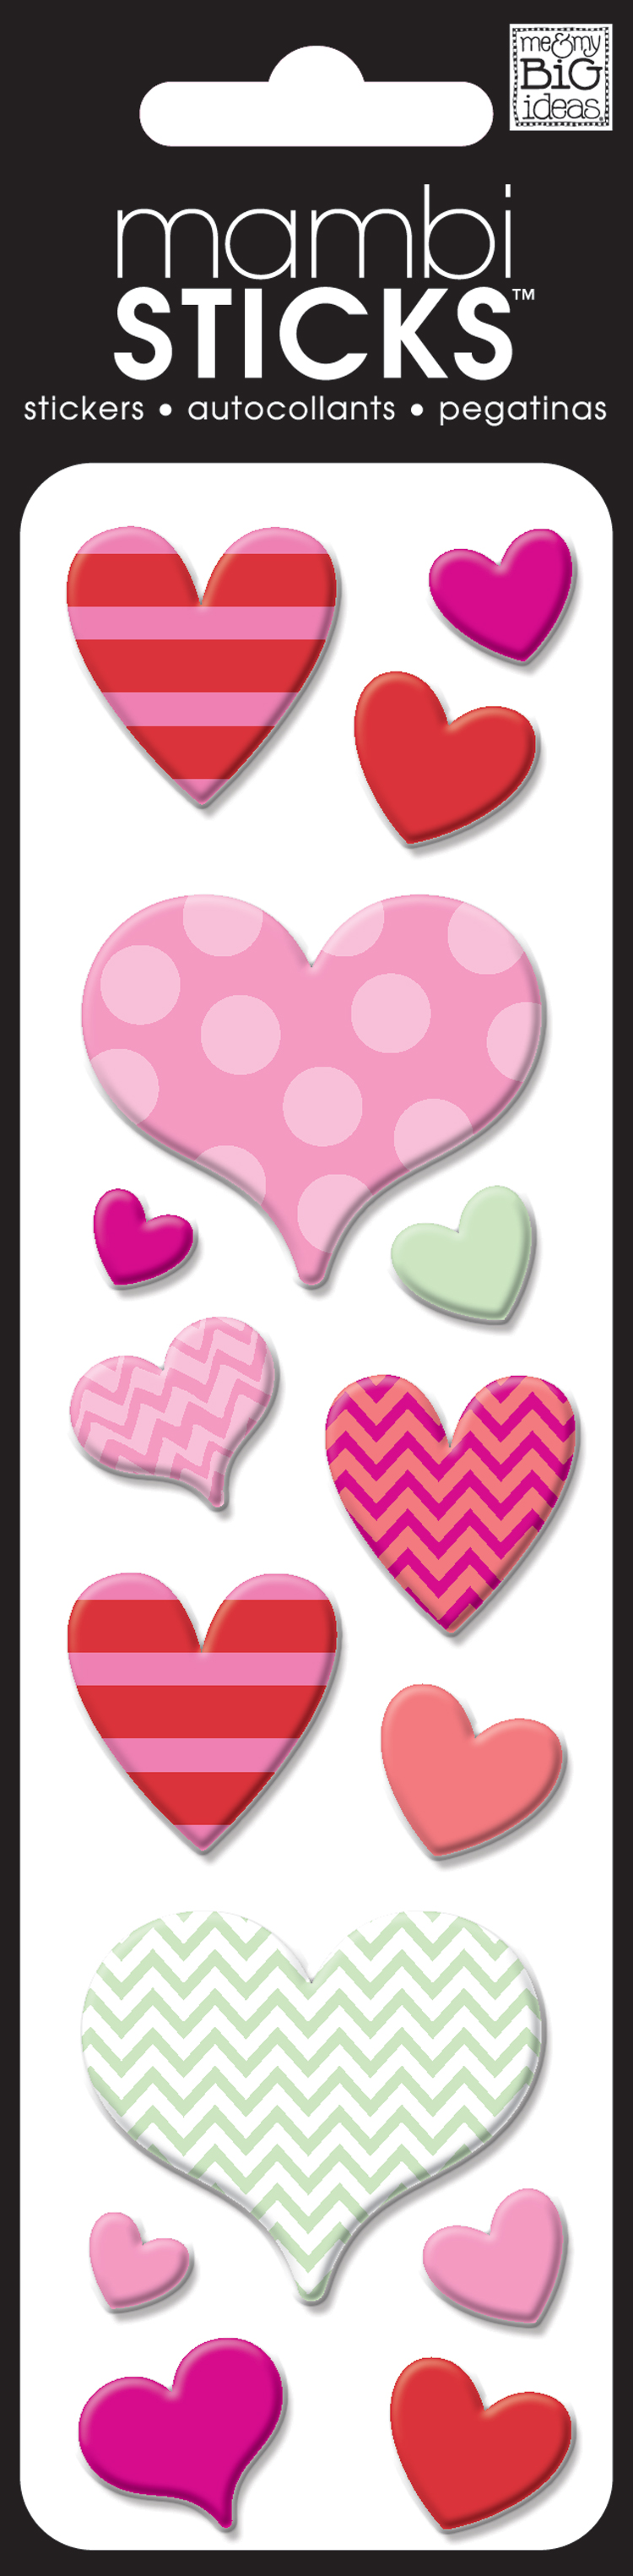 mambiSTICKS: pufft multi colored heart stickers.